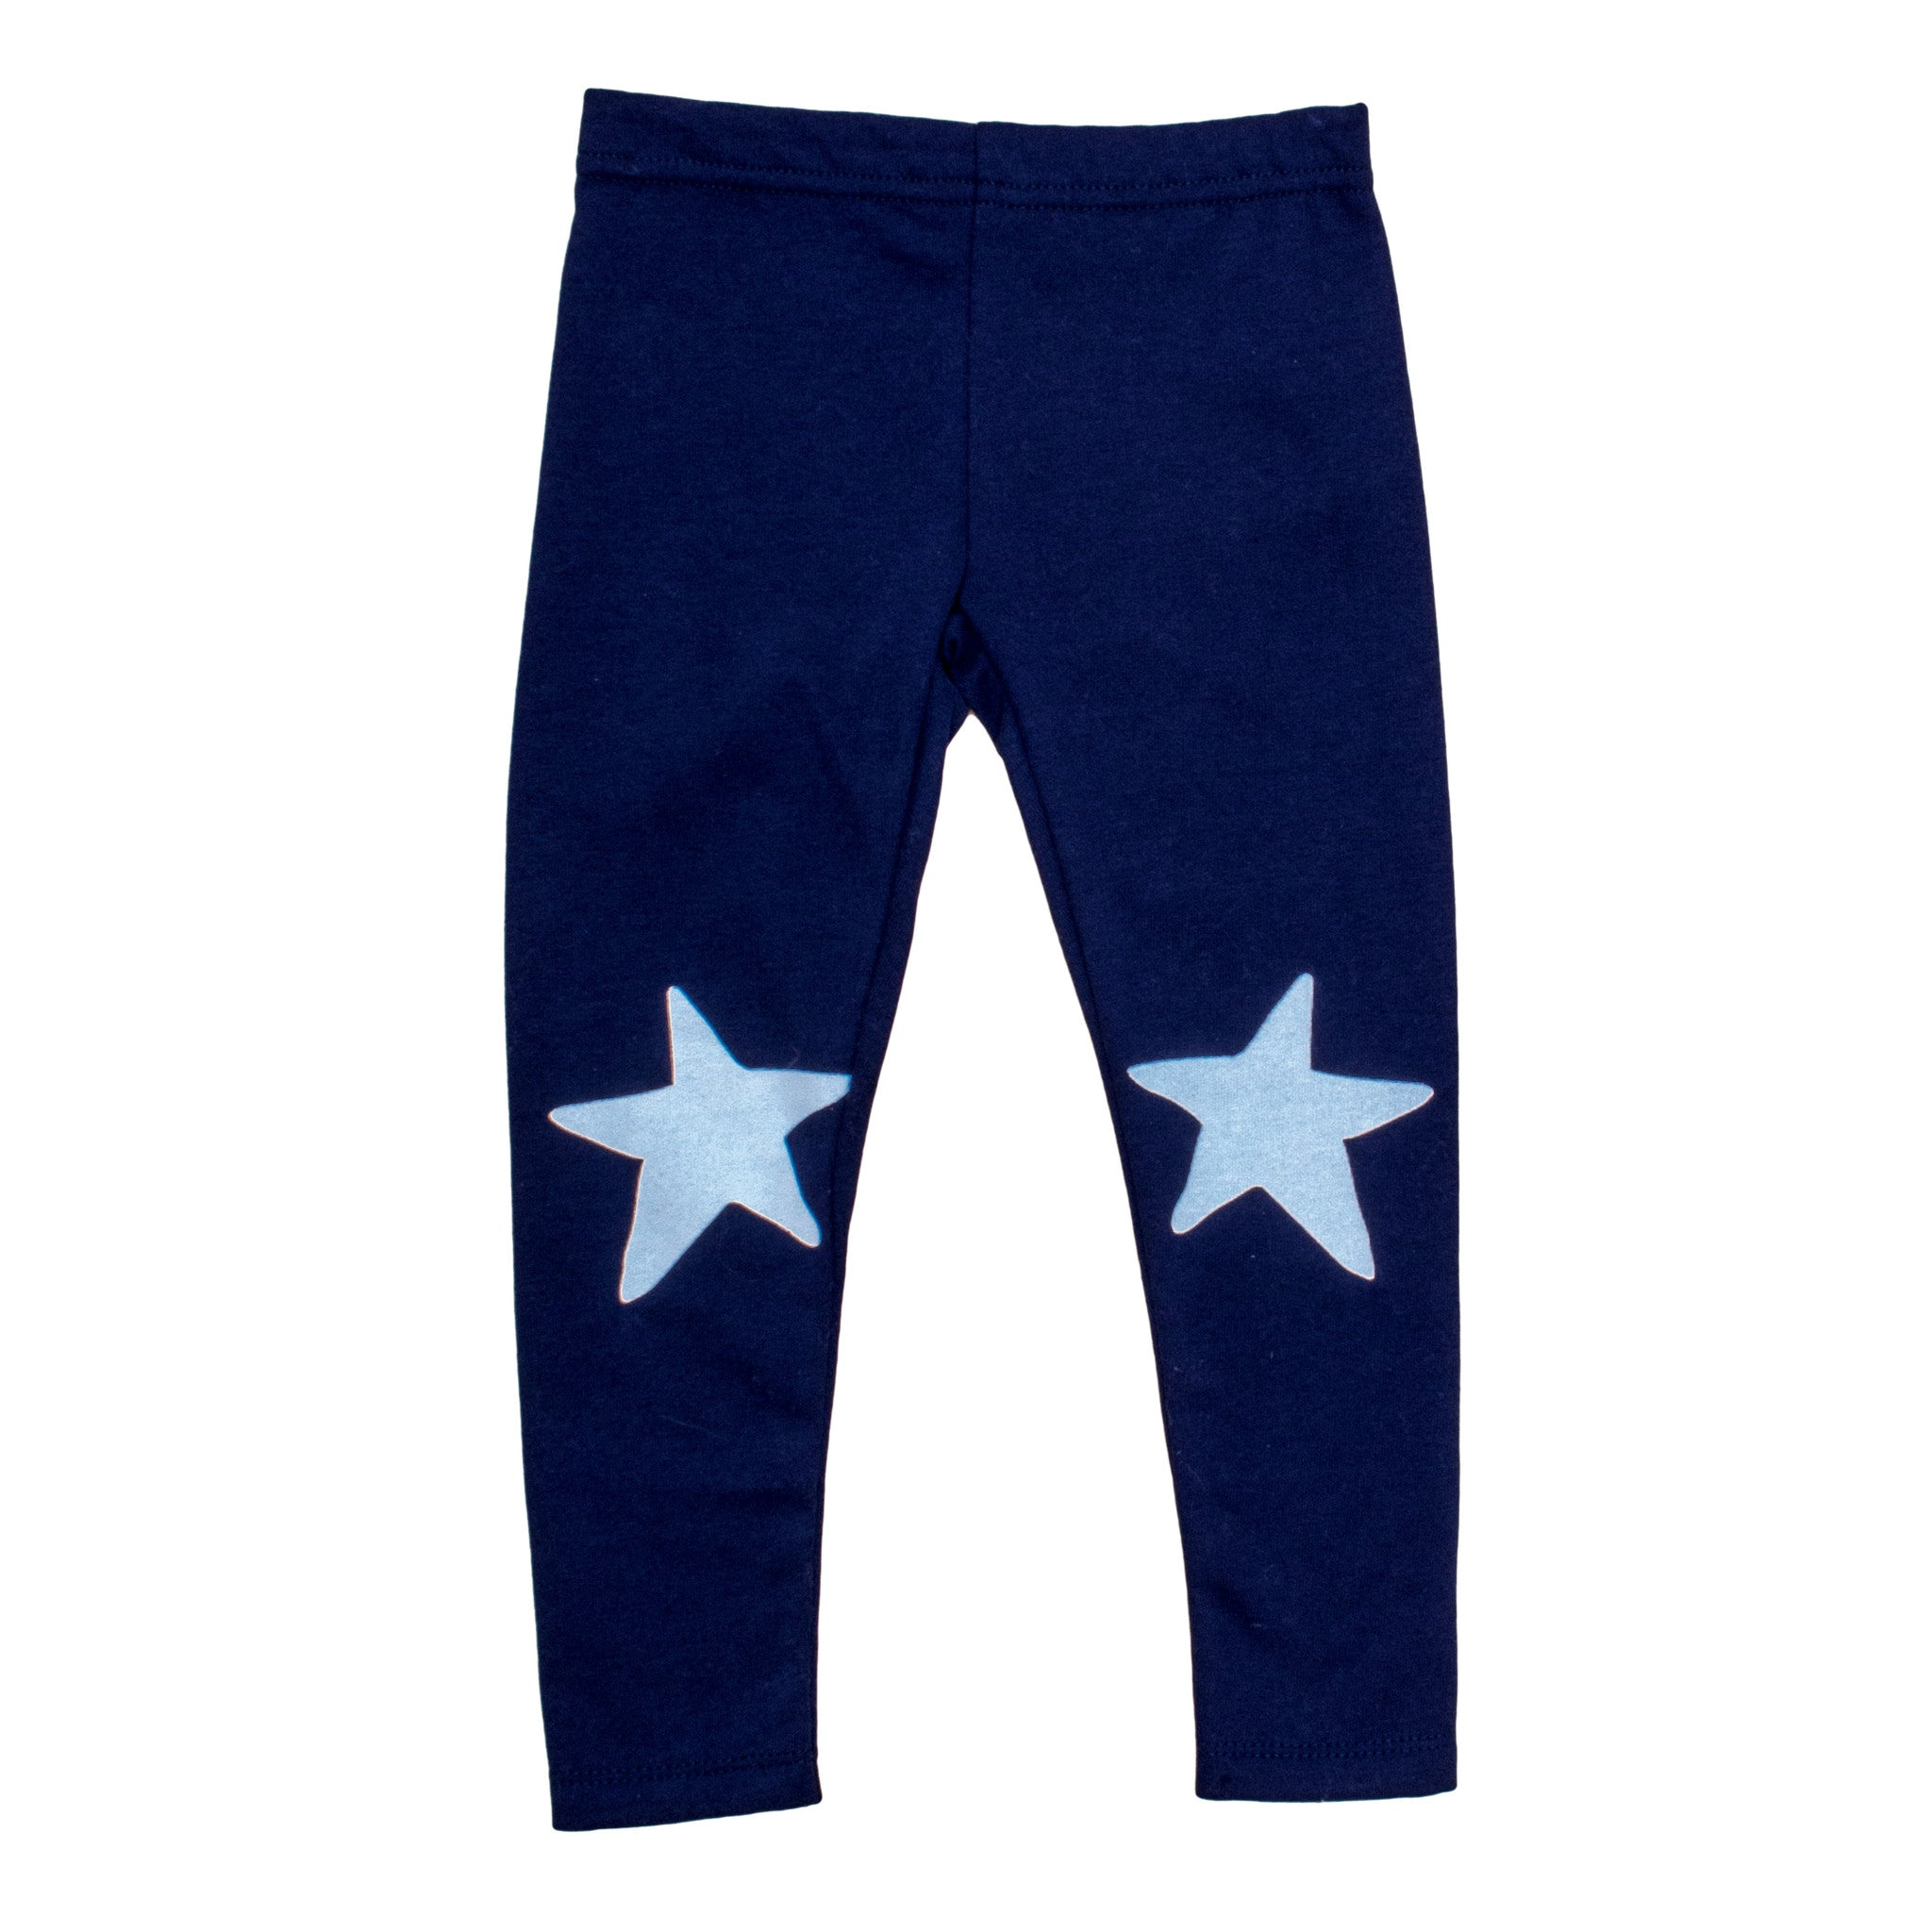 Noé & Zoë White Star Baby Leggings